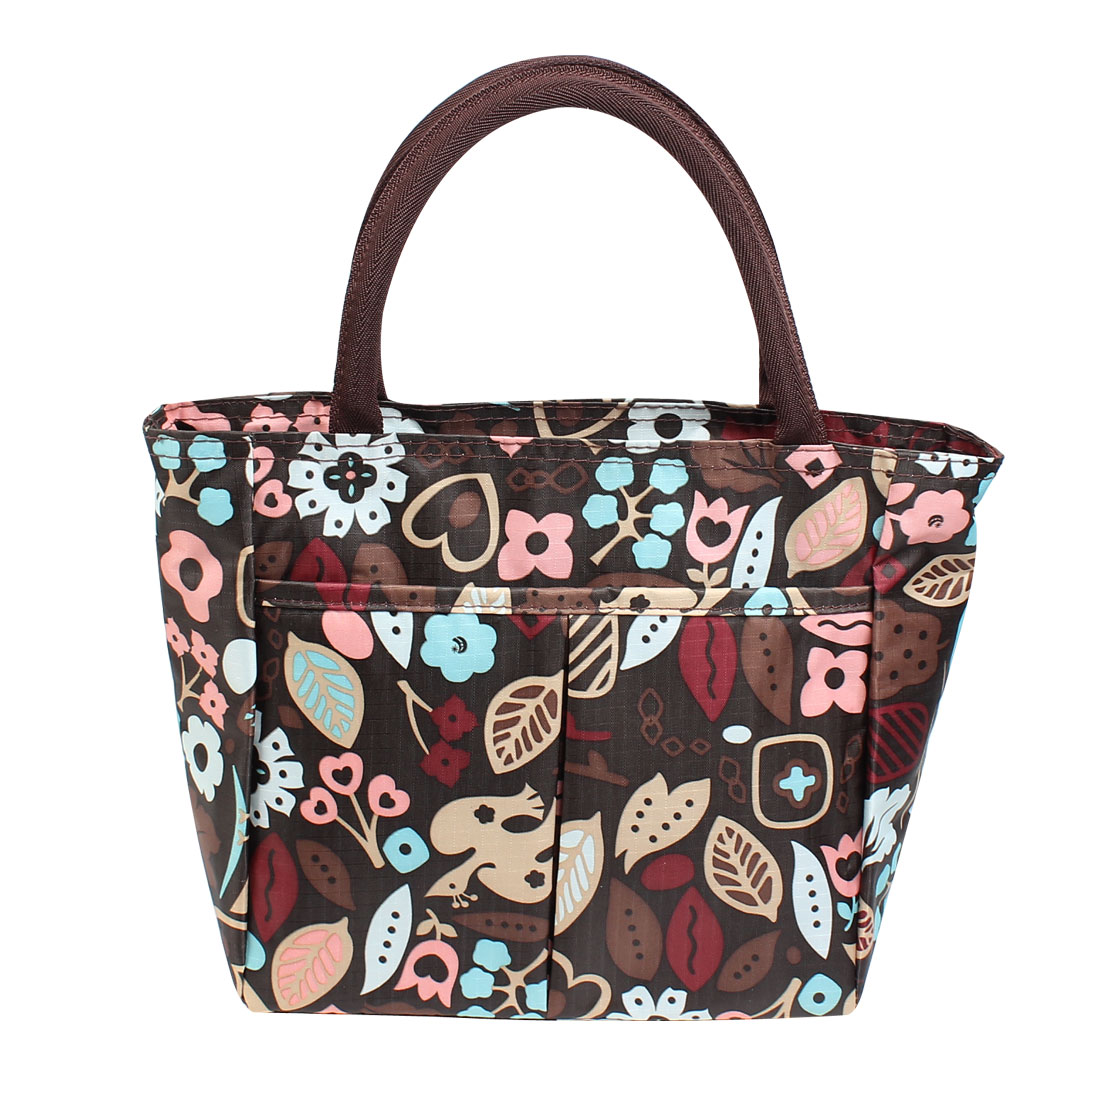 Blue Beige Pink Bird Leaves Pattern Zippered Shopping Handbag Brown